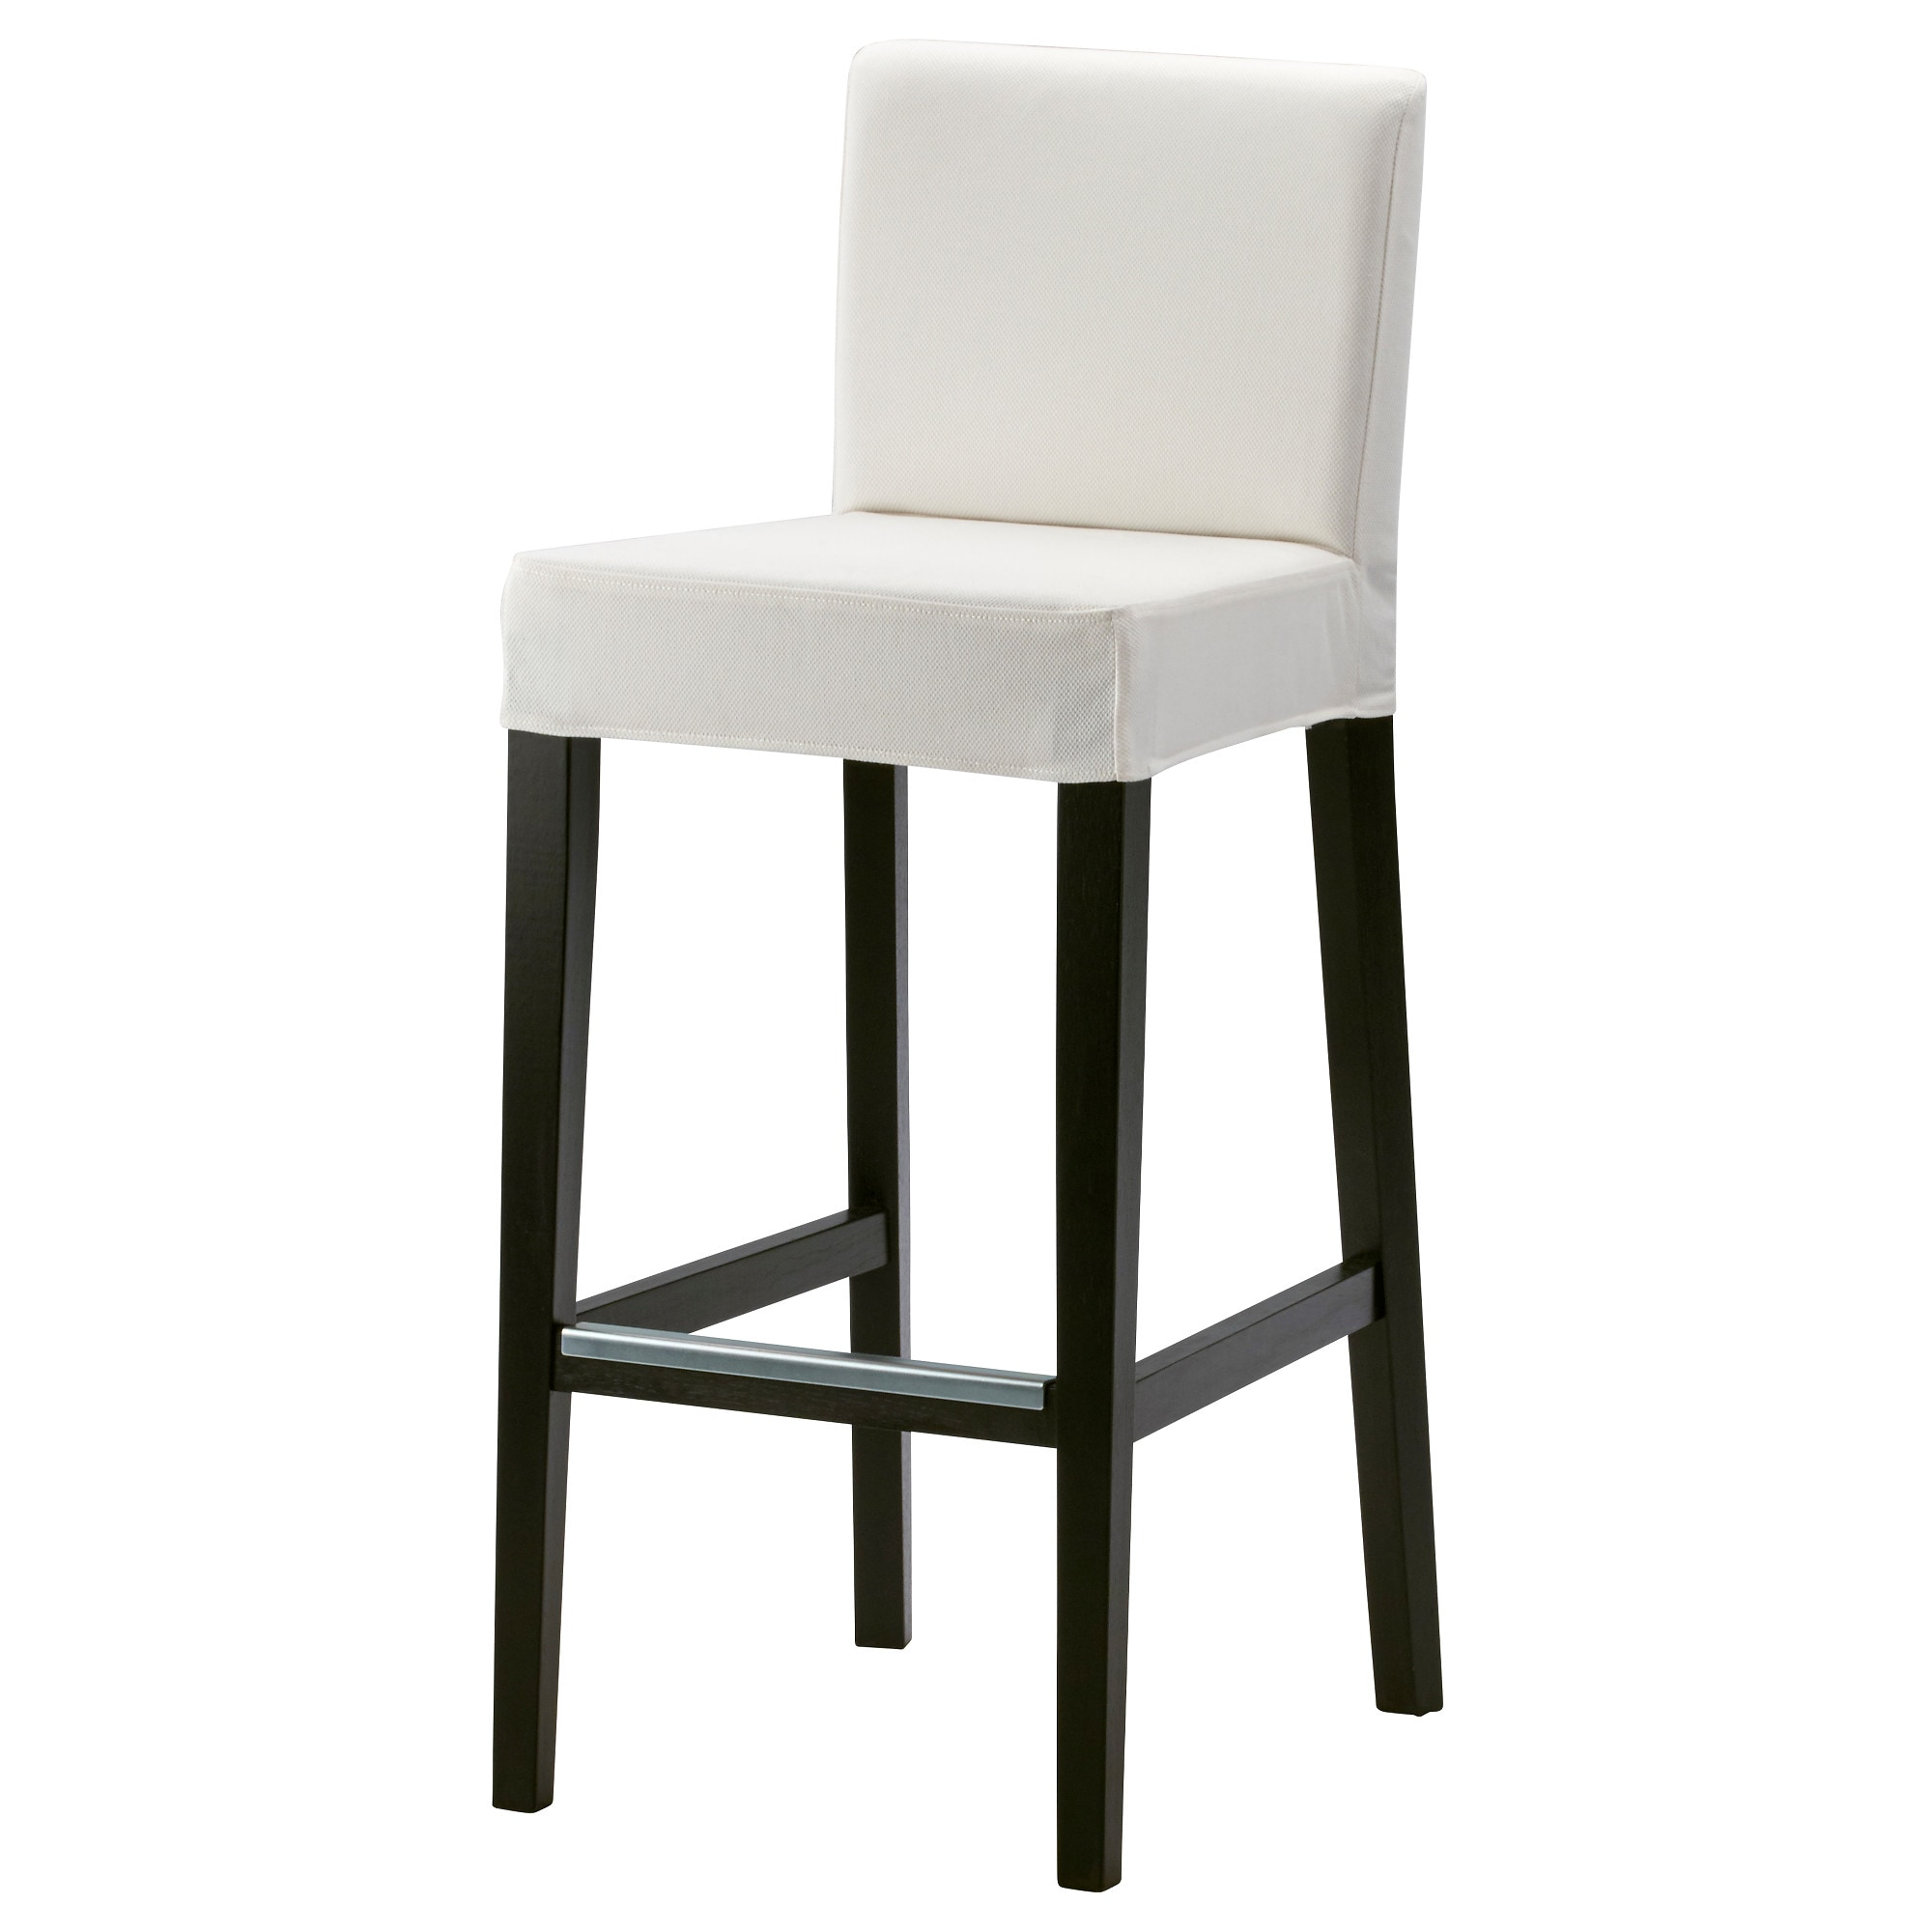 Bar Stools For A Bar Part - 15: HENRIKSDAL Bar Stool With Backrest, Brown-black, Gräsbo White Tested For:  220